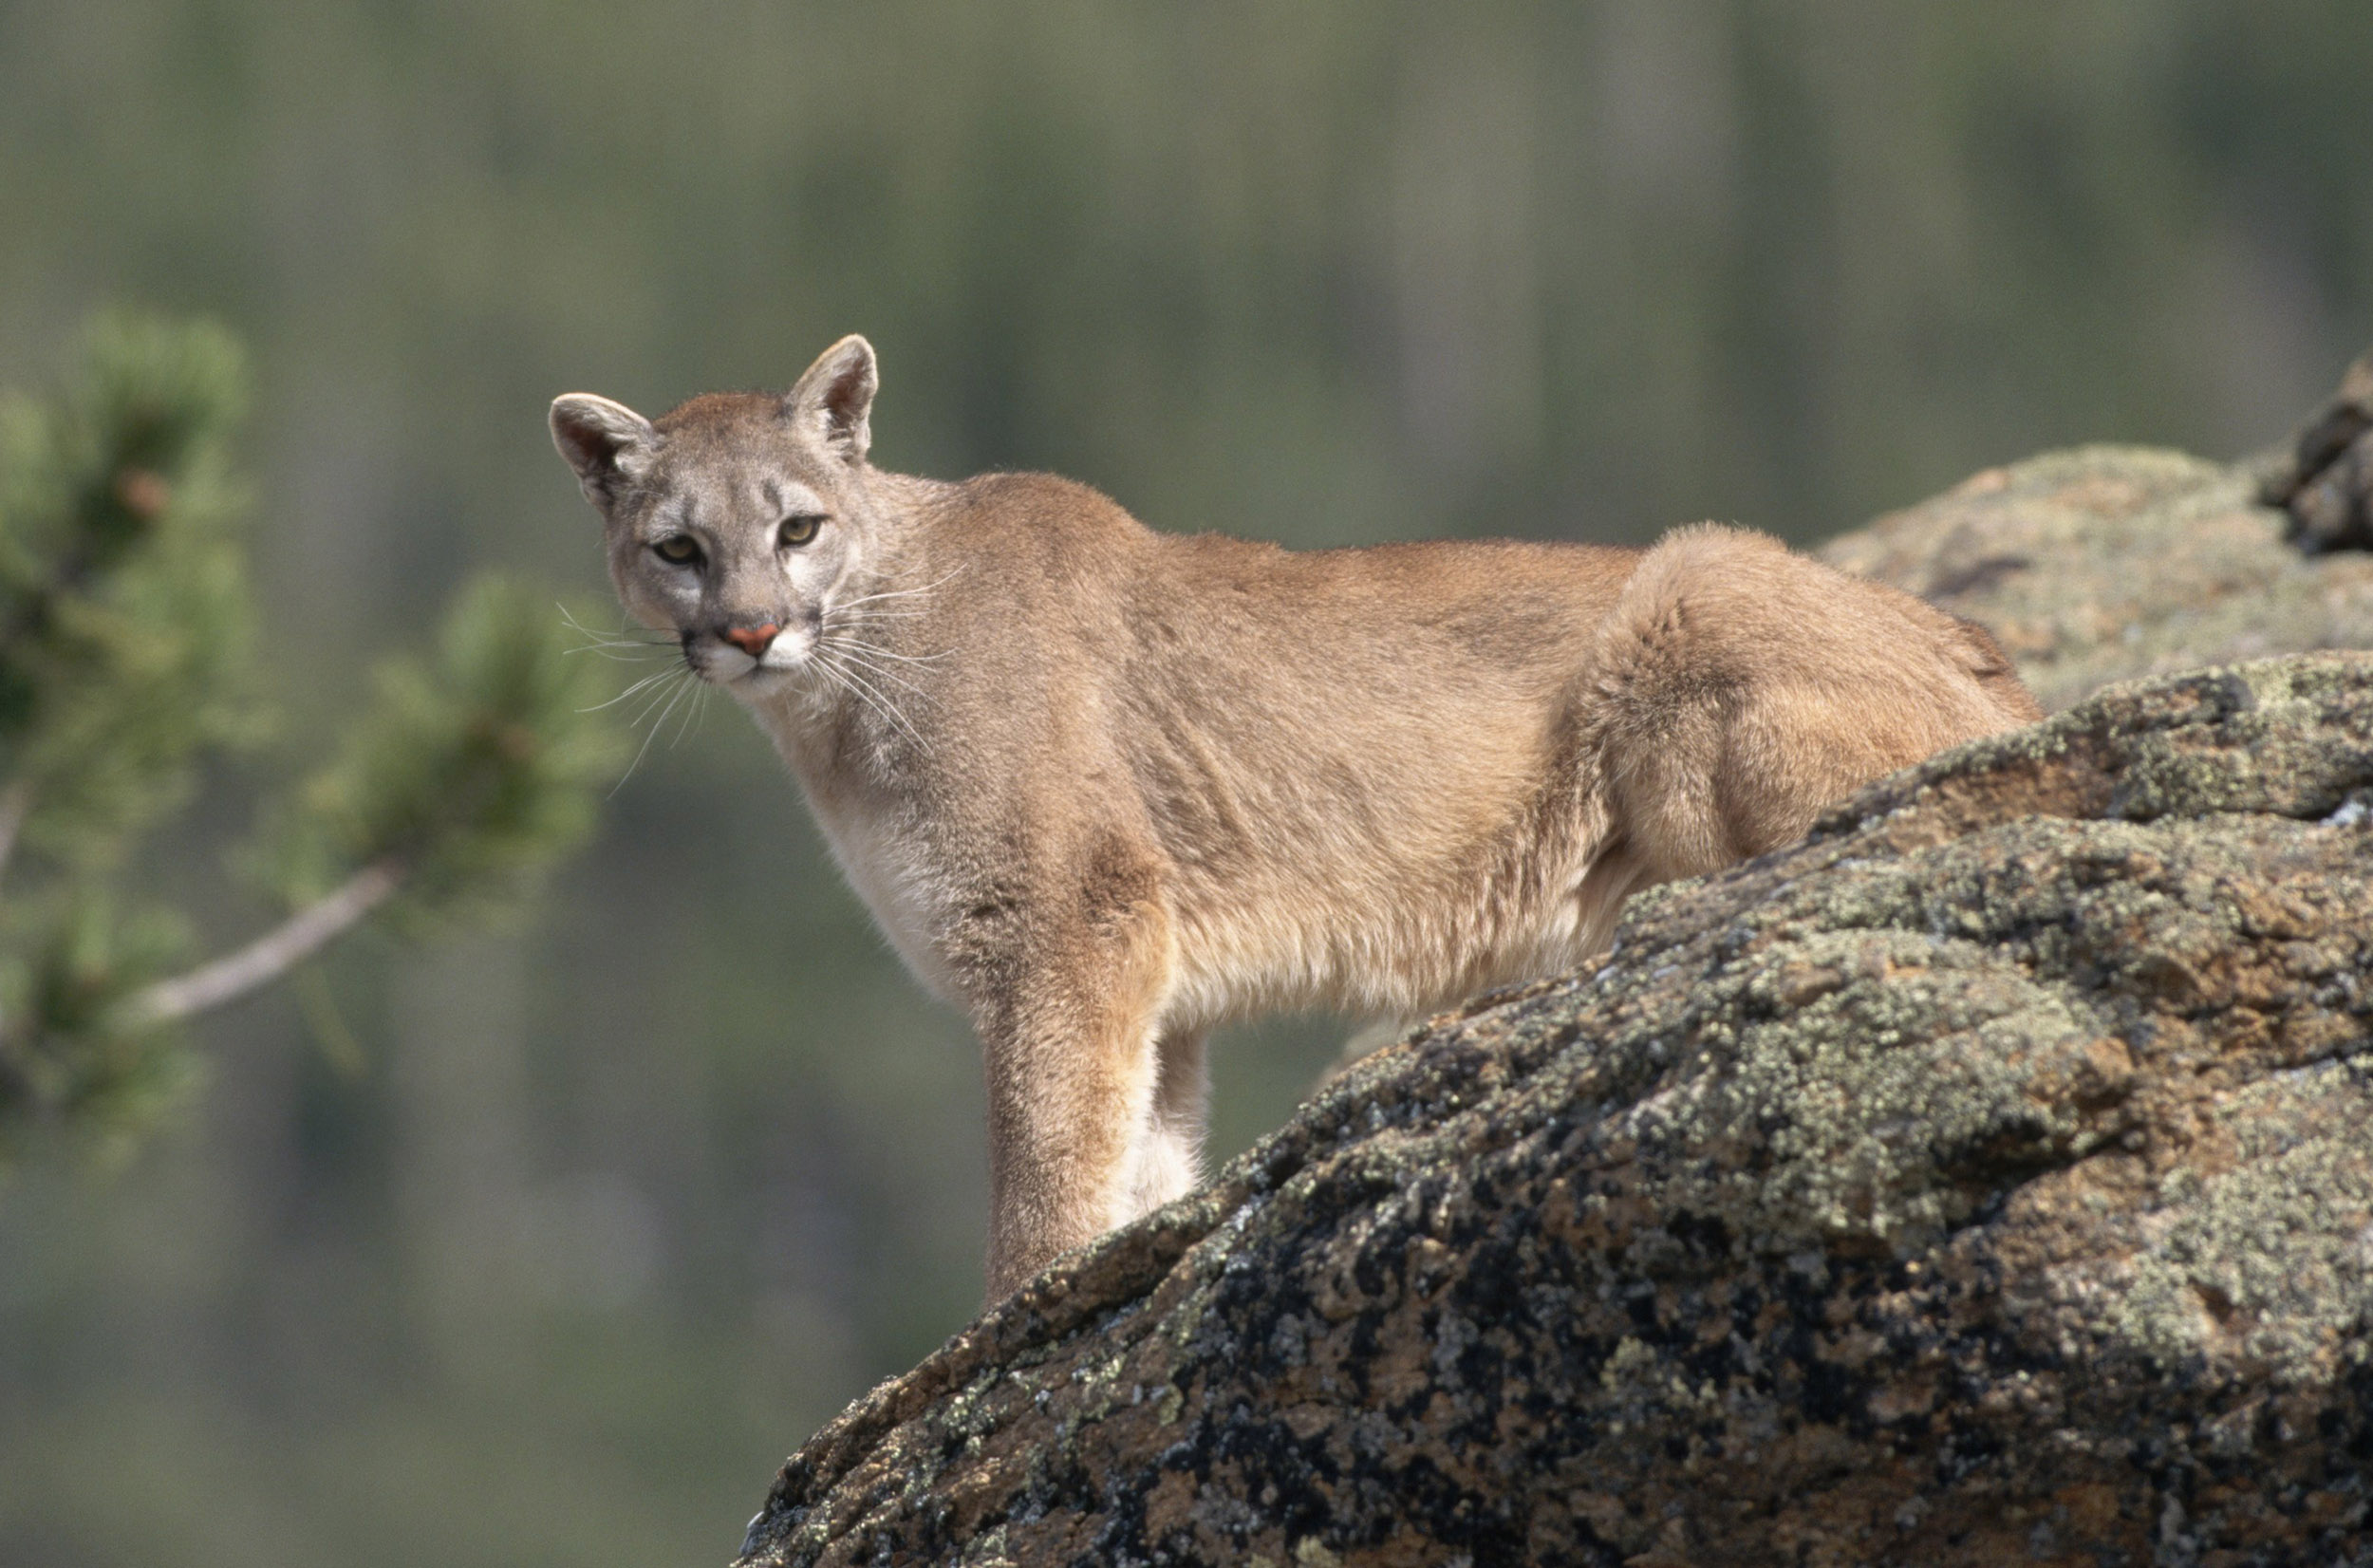 Mountain lion killed after attacking child in Southern California